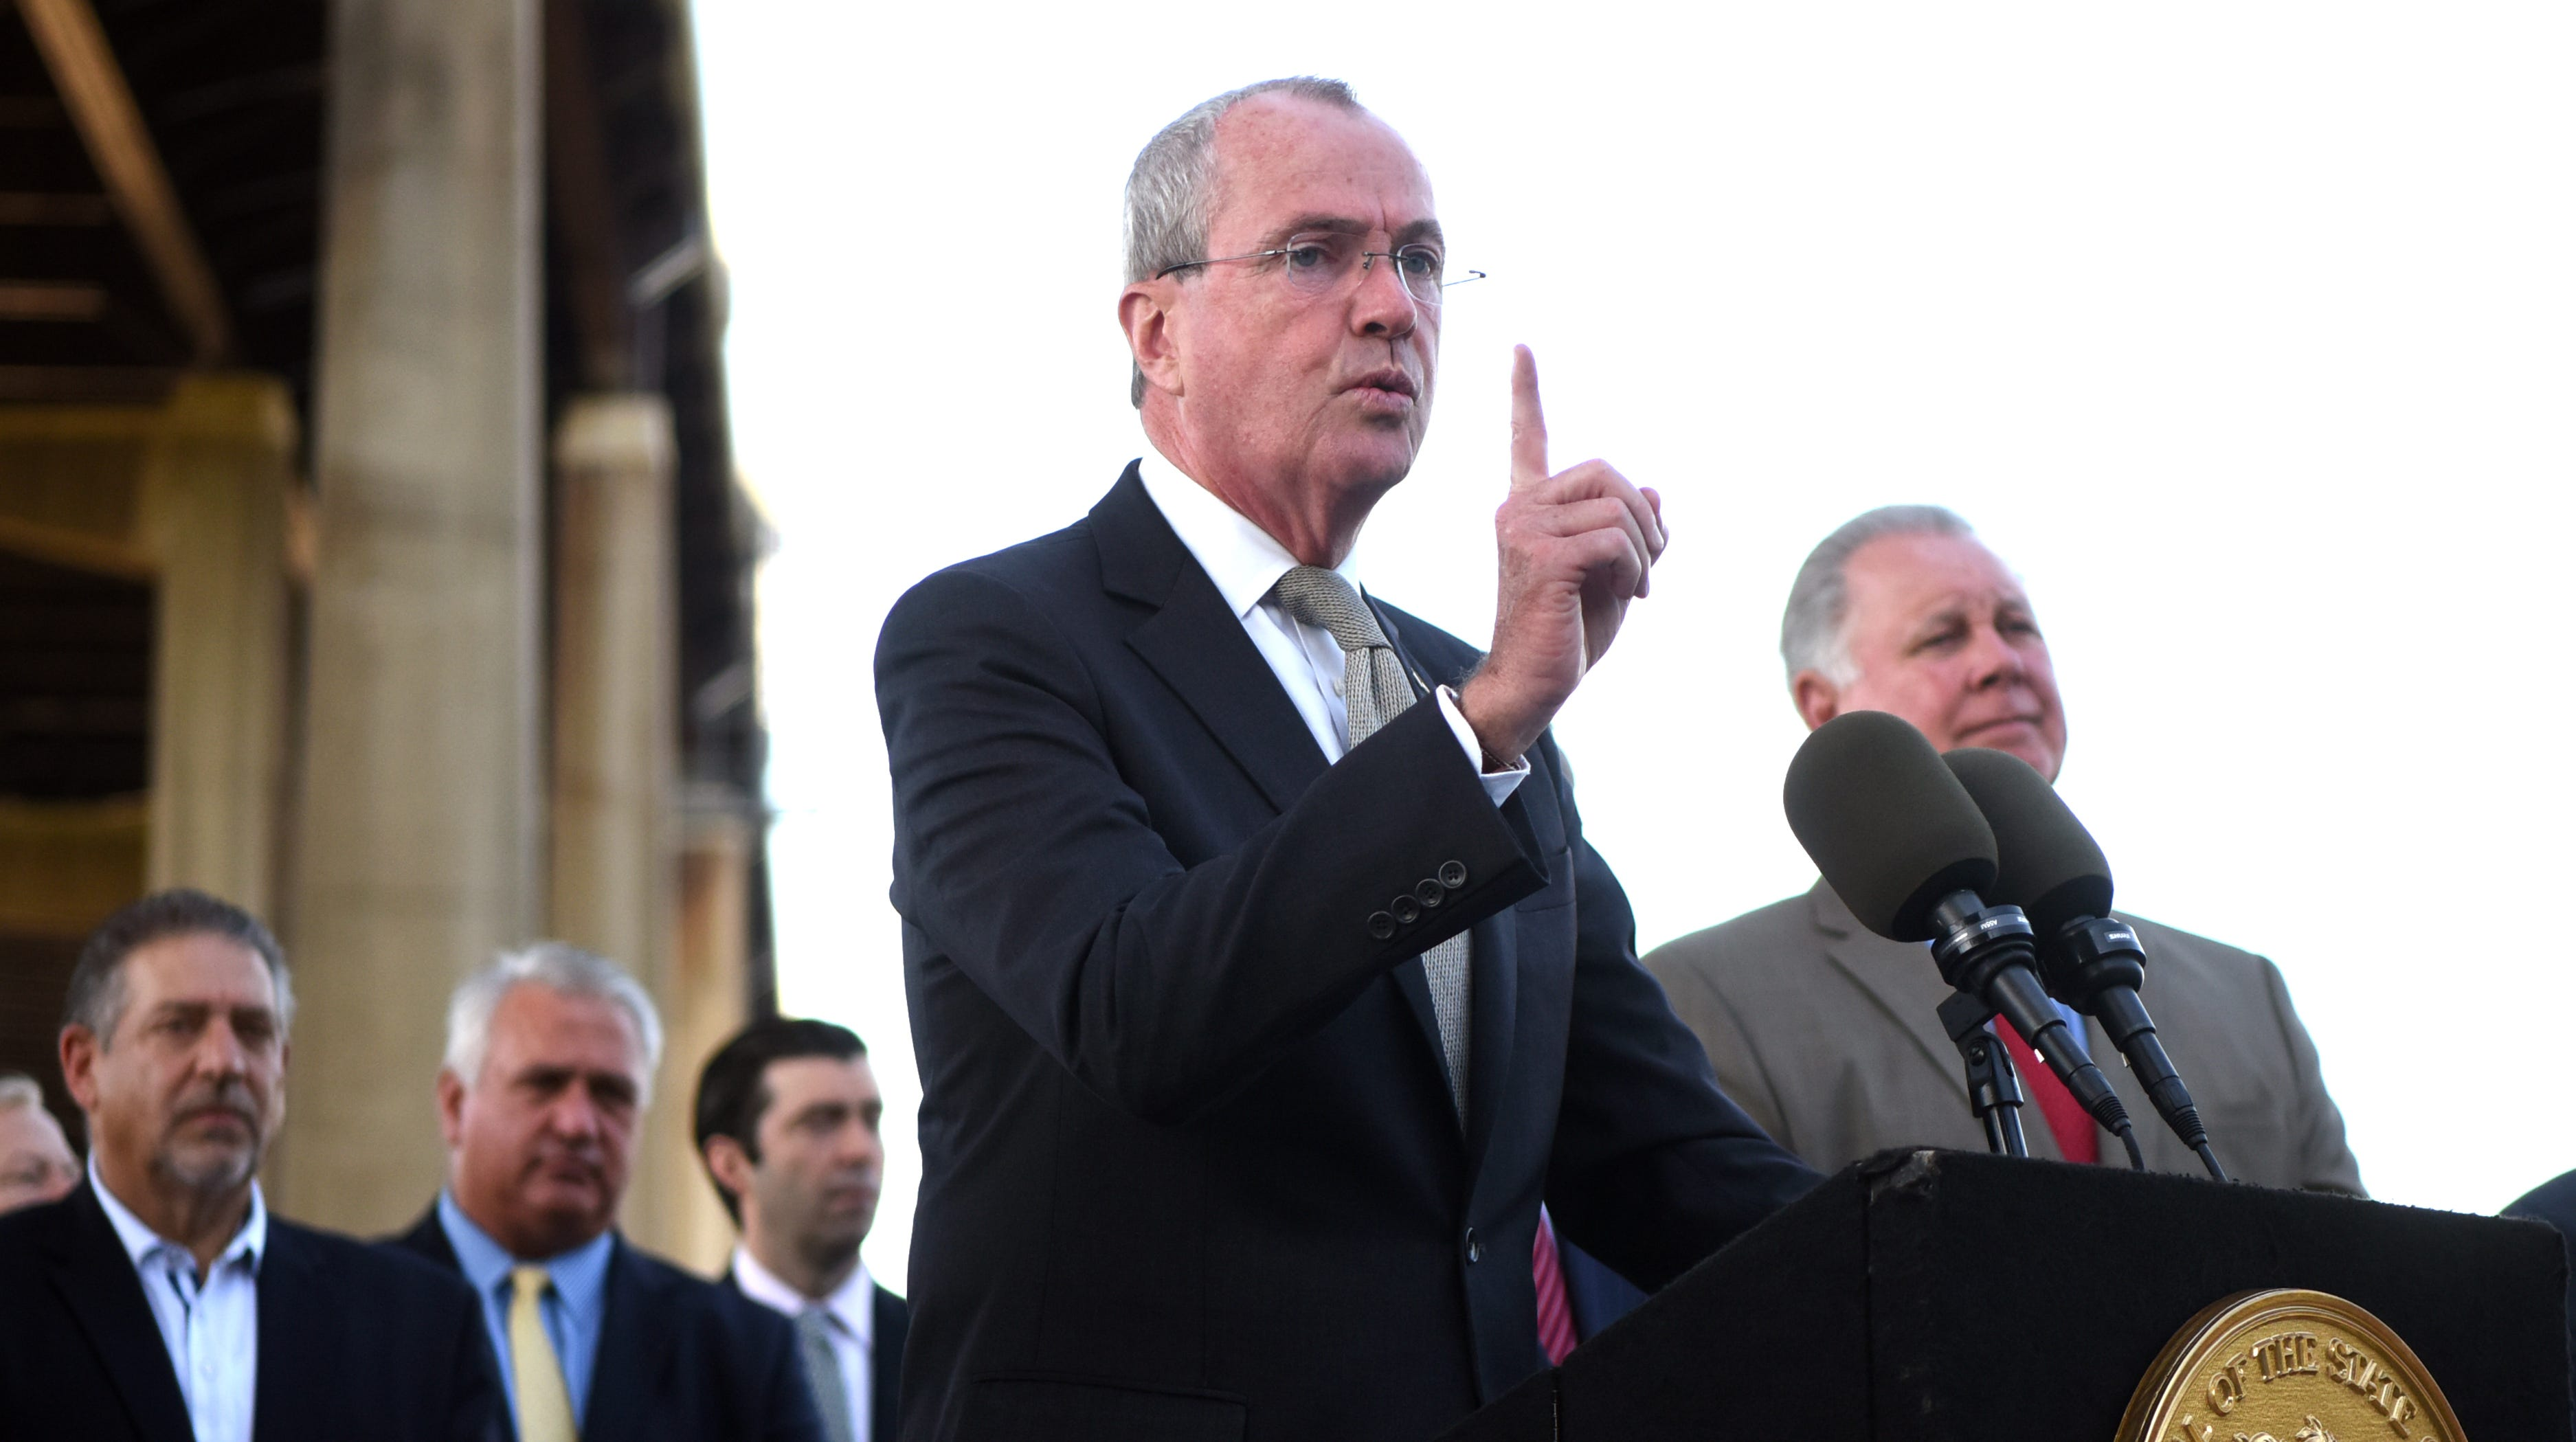 Gov. Phil Murphy to lay out his economic vision for New Jersey at former pharma campus